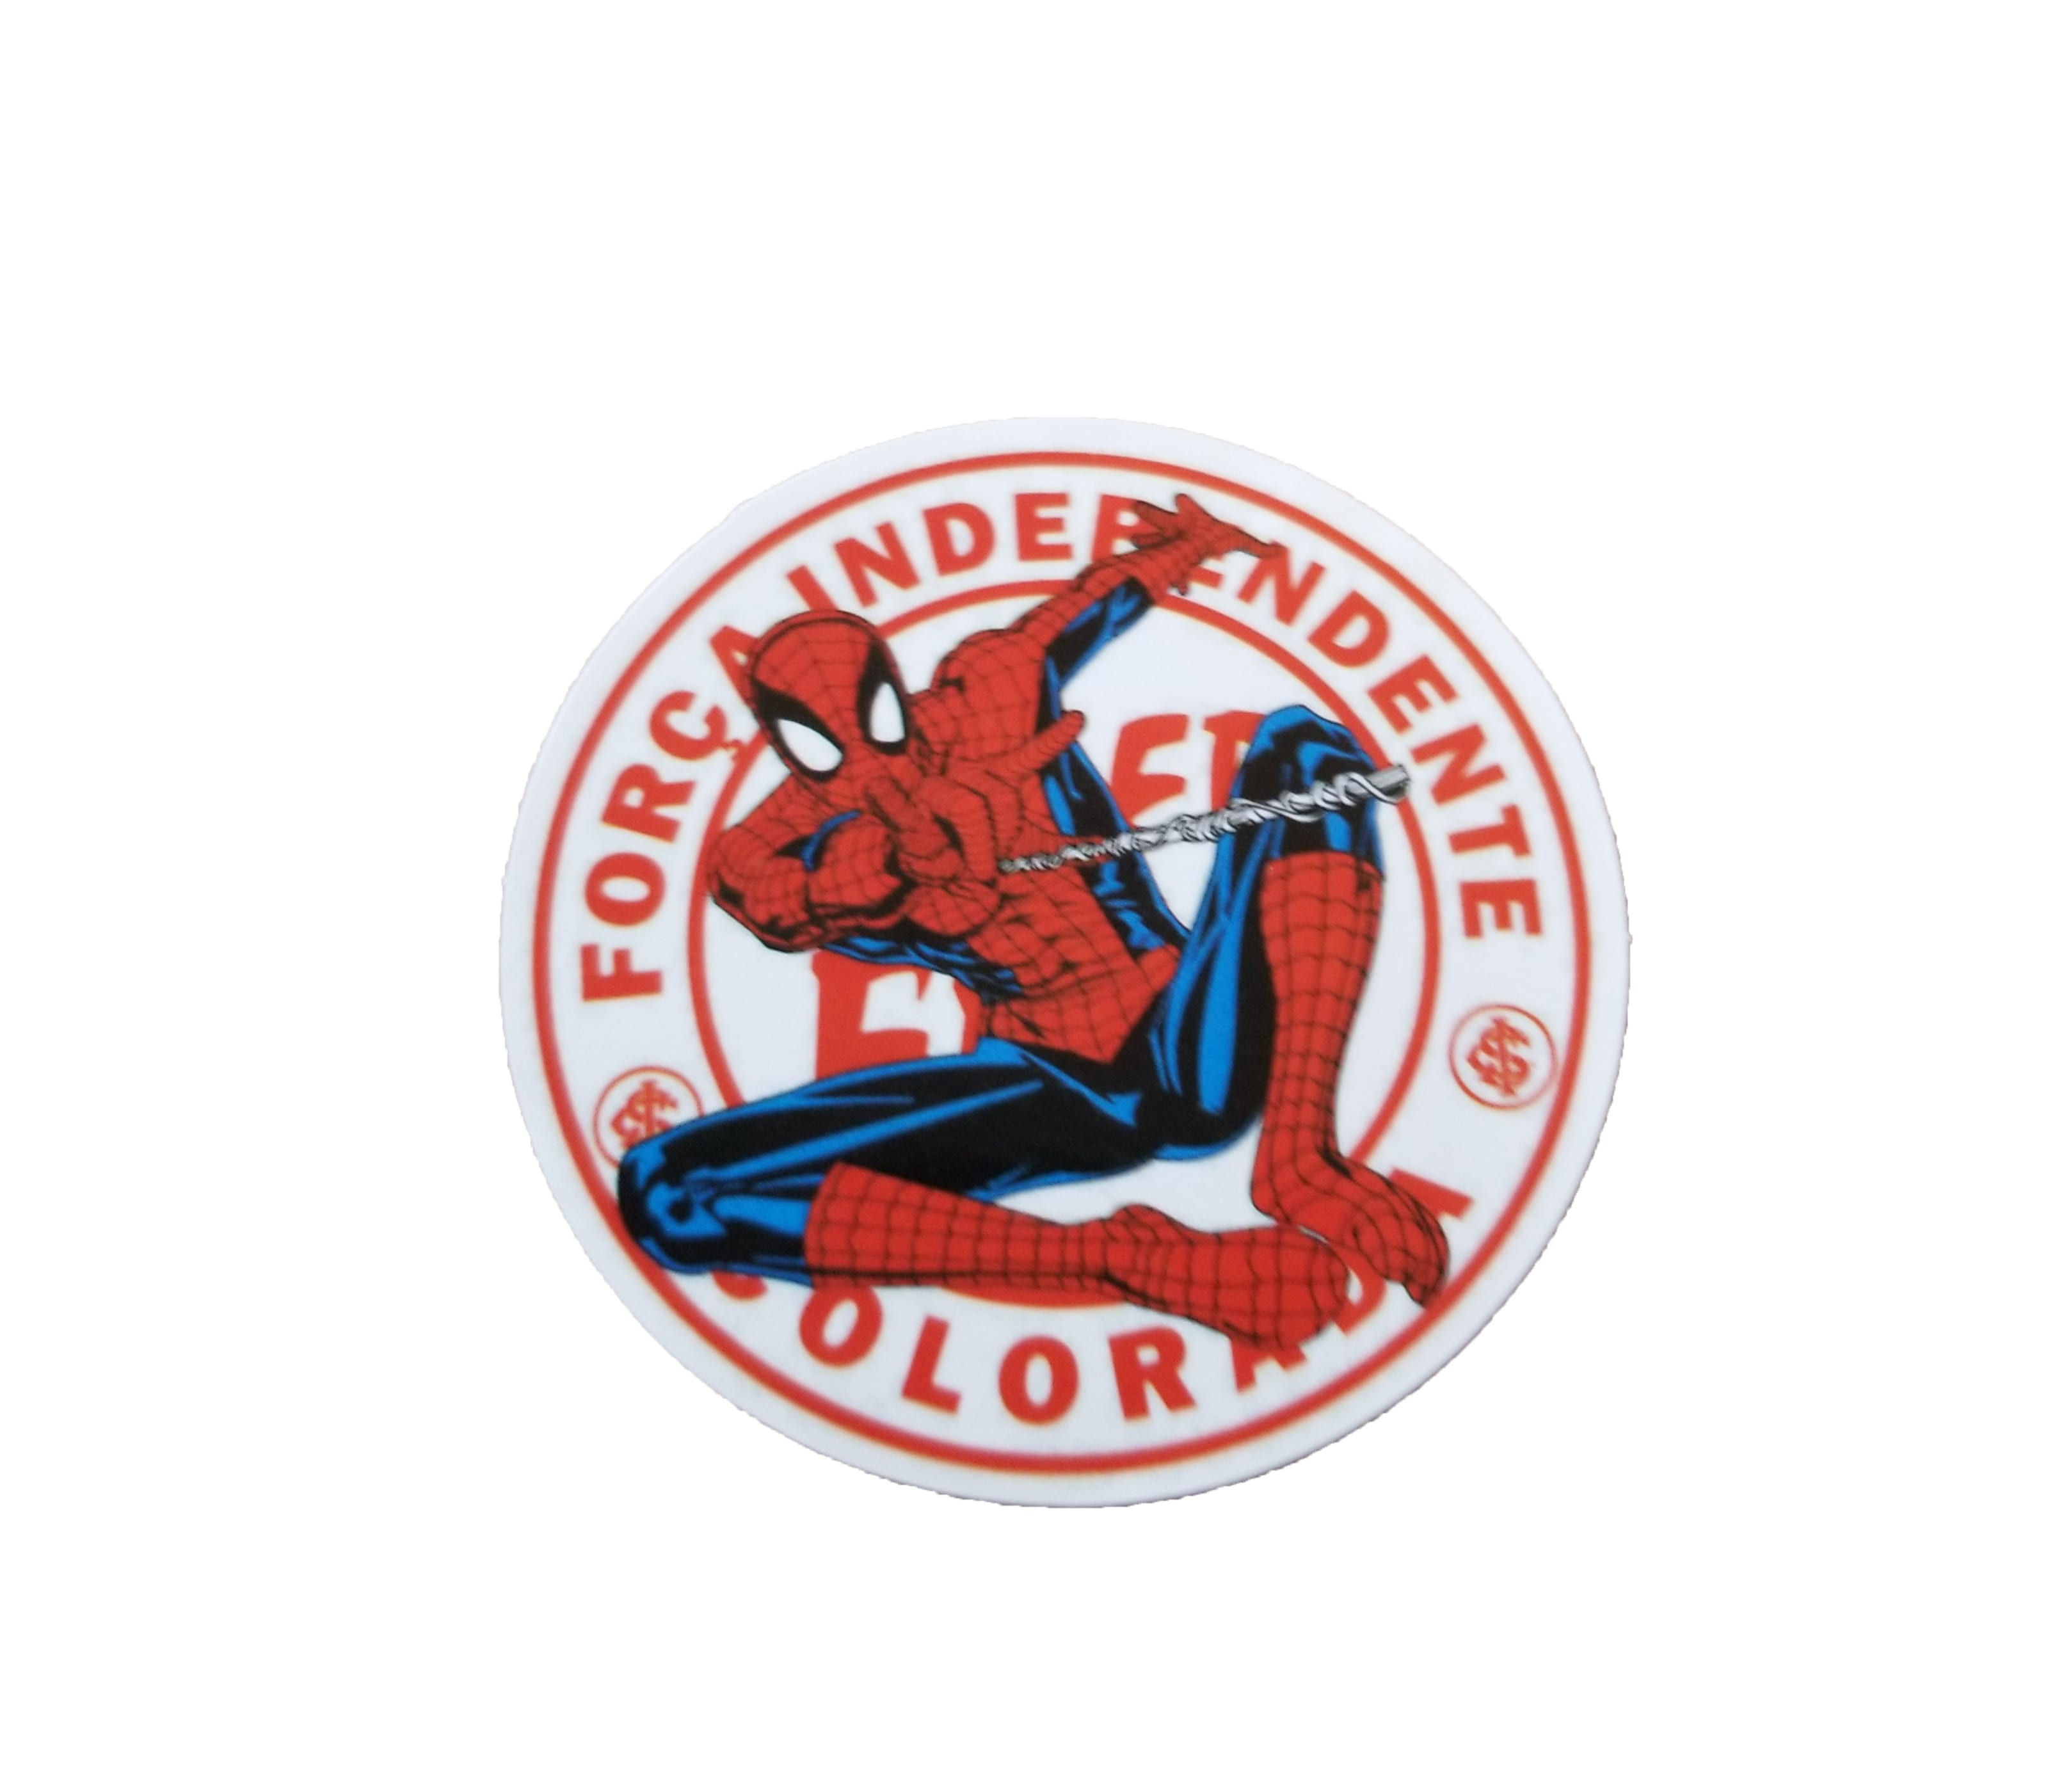 Round Força Independente Spiderman Sticker. White background with Força logo in red letters.